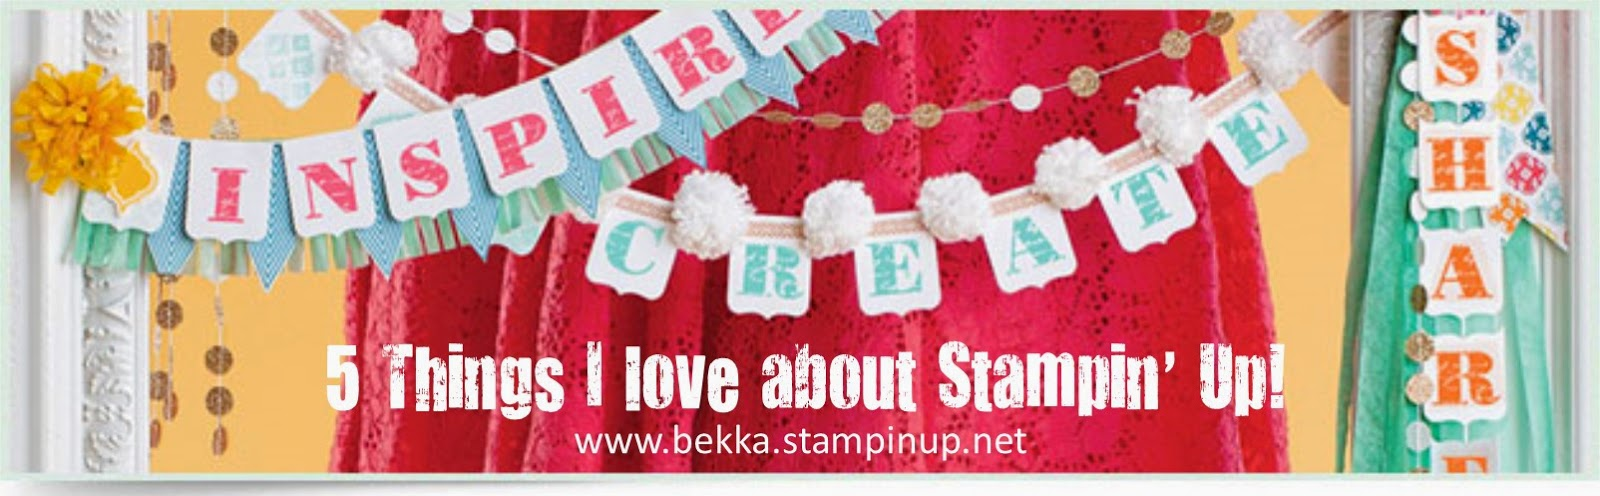 5 Things I love about Stampin' Up! UK